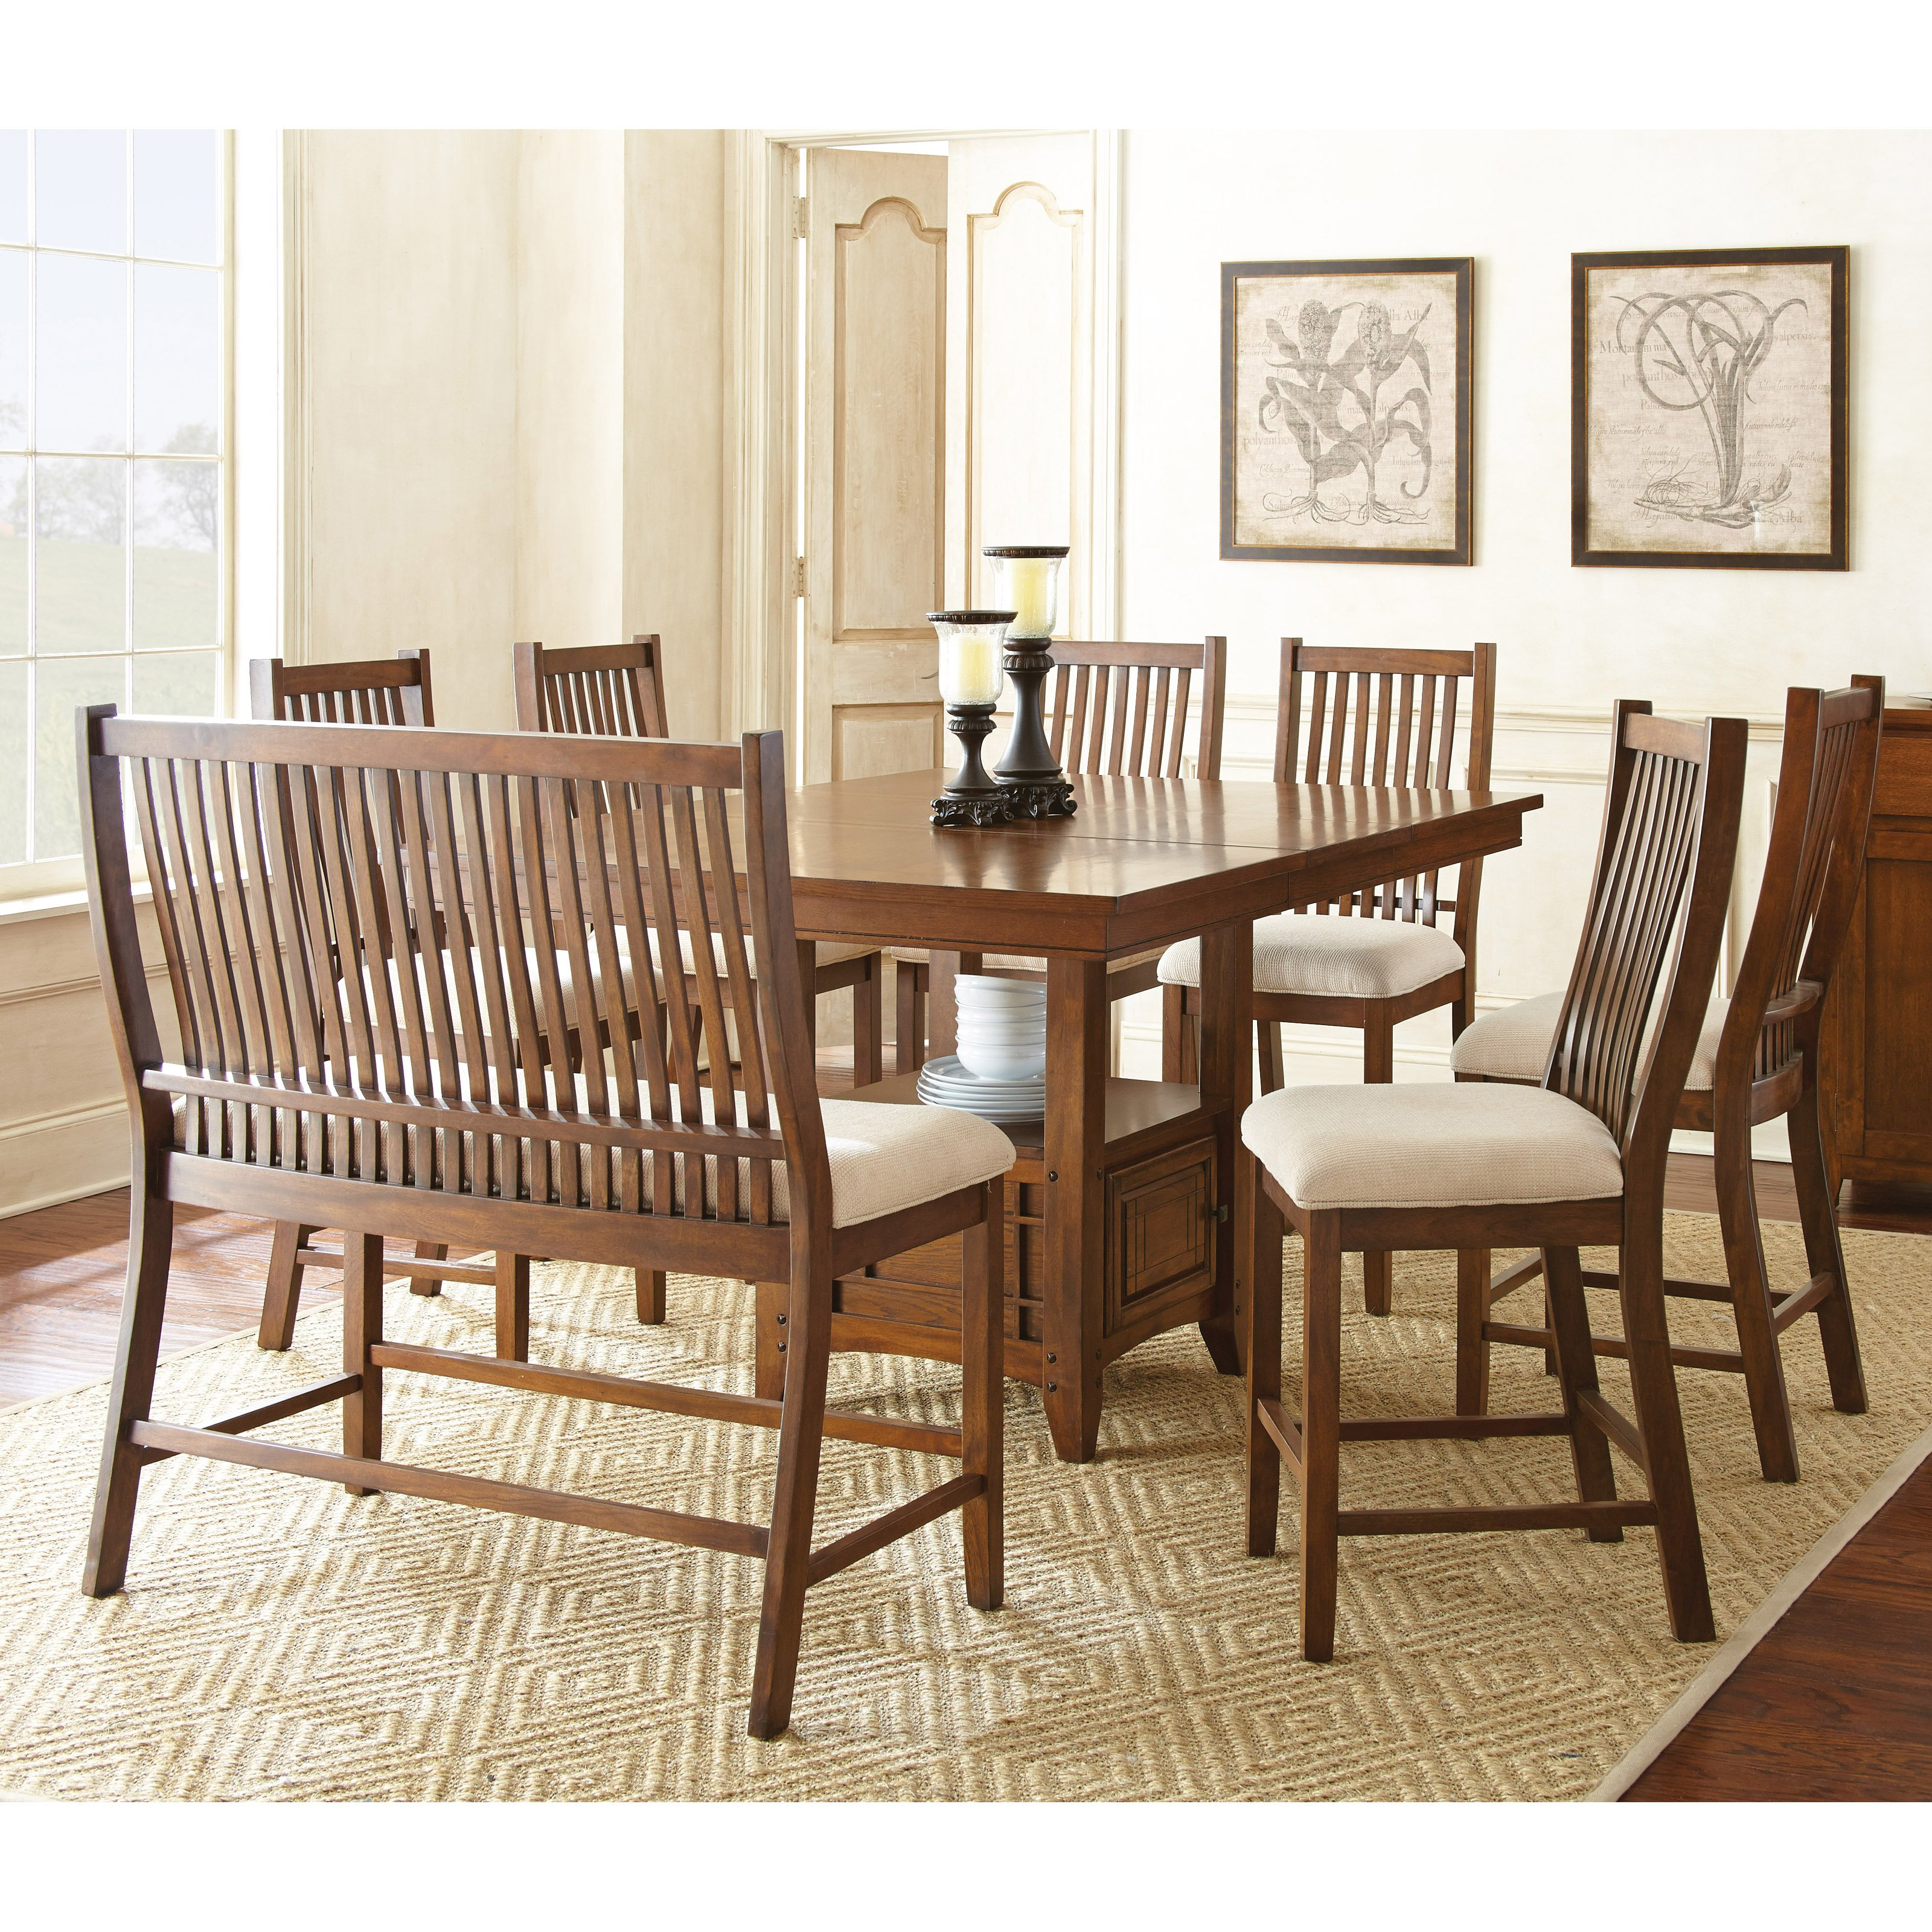 Steve Silver 8 Piece Kayan Counter Height Dining Table Set